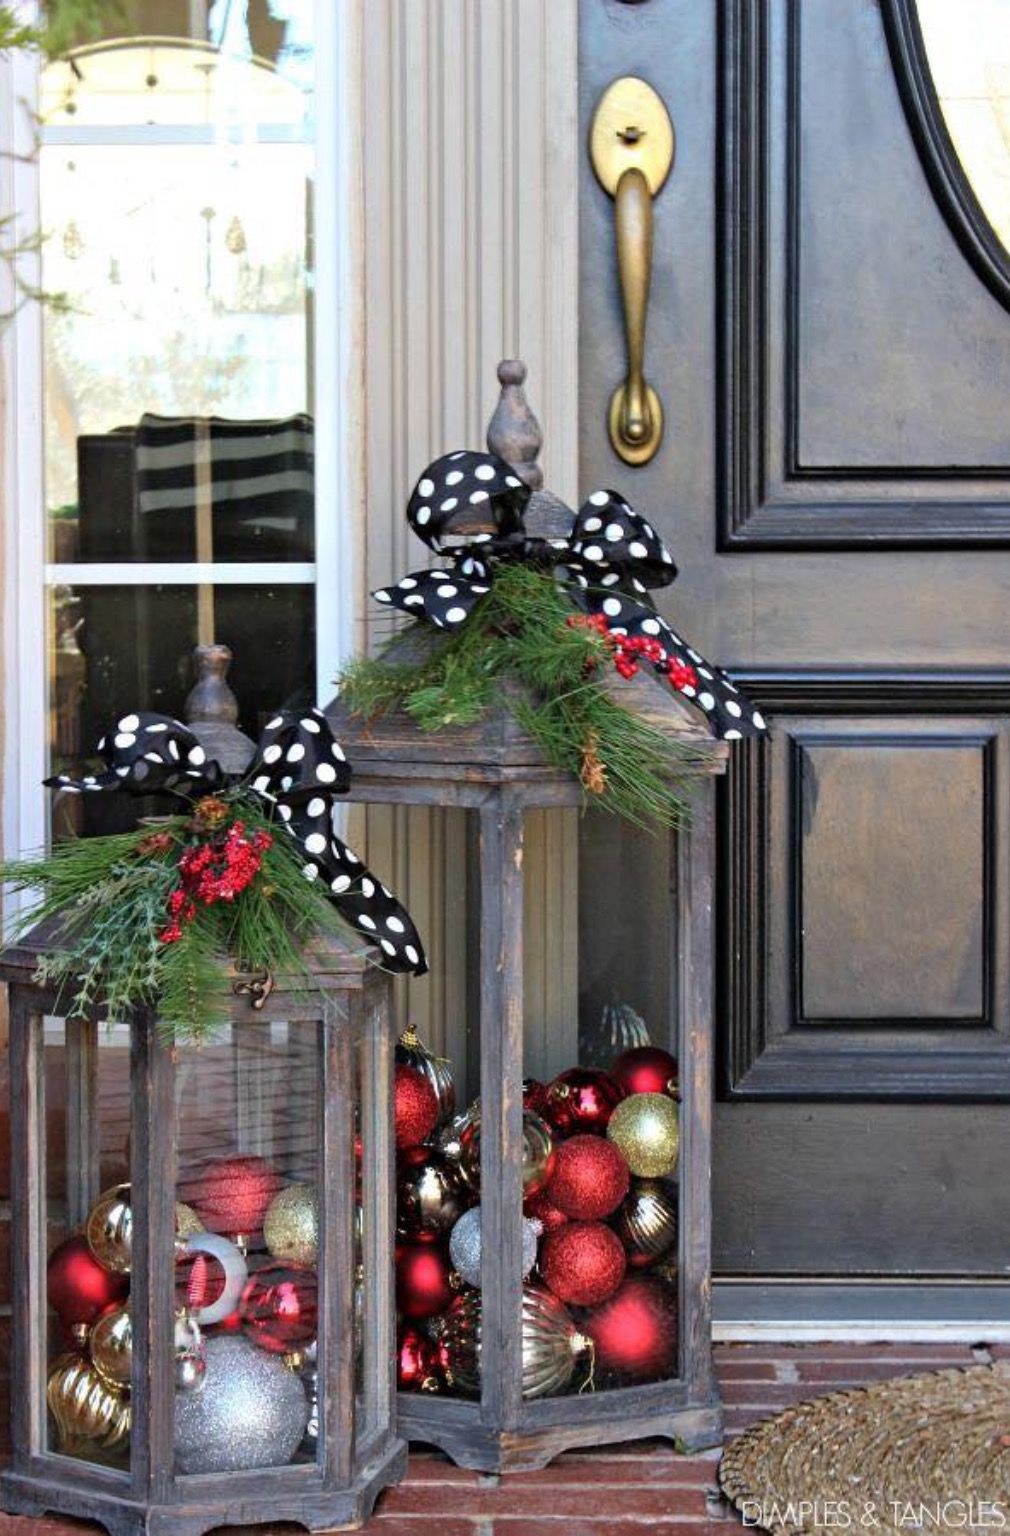 Lanterne De Noel Exterieur Pin By Lauren Benet On Tis The Season Pinterest Deco Noel